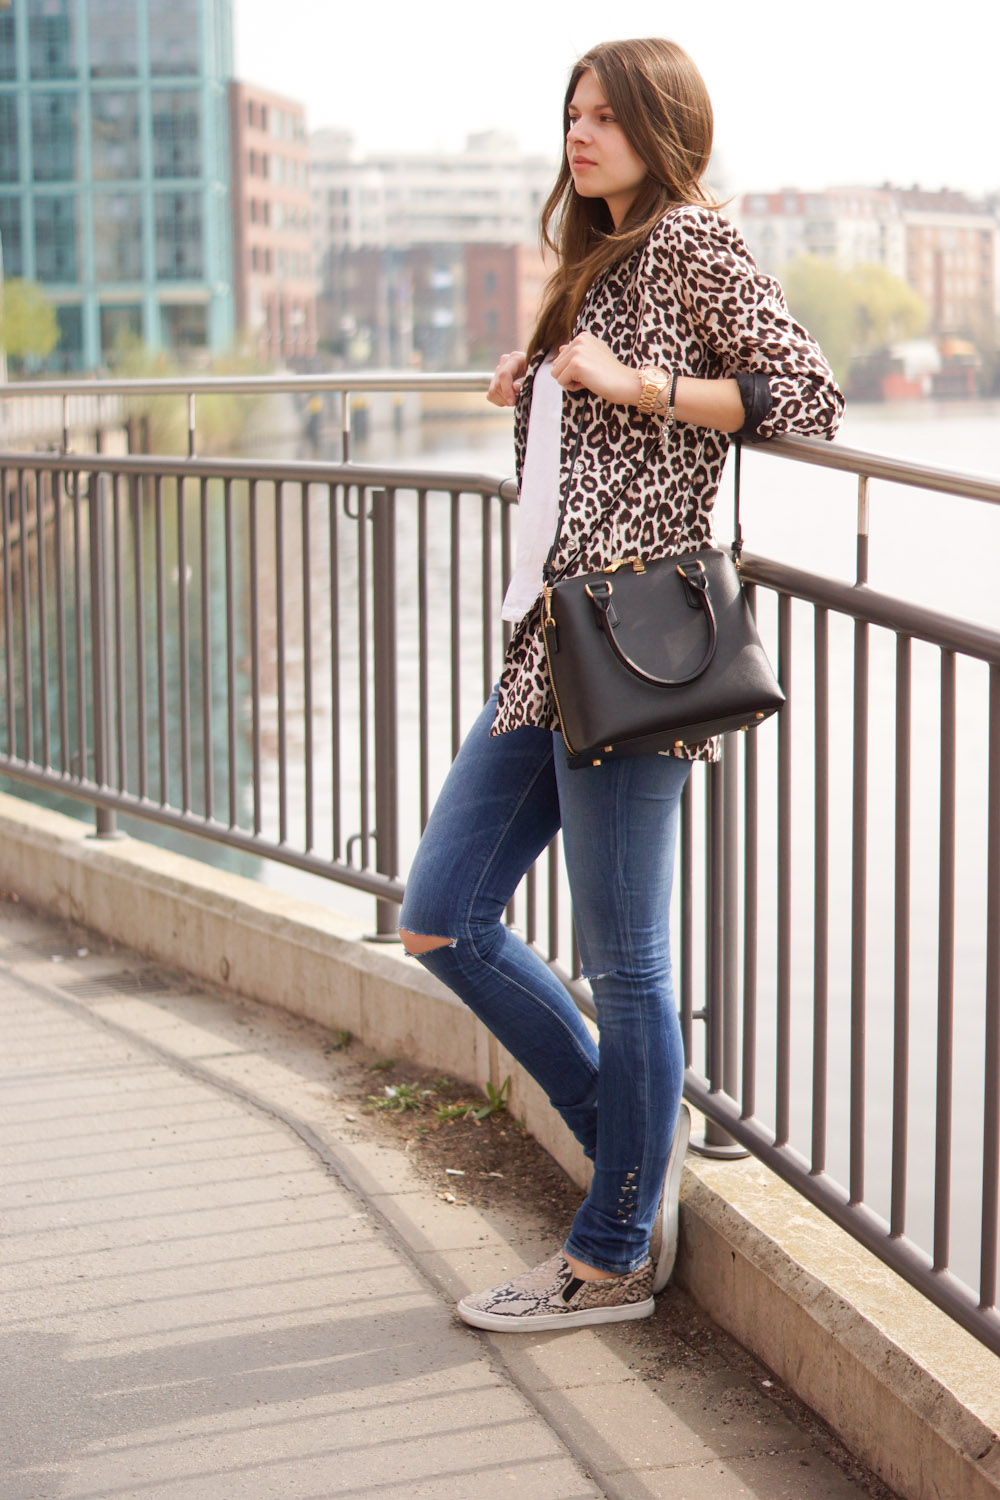 a9a6a8b50b21 Mixing Prints - Leopard and Snake